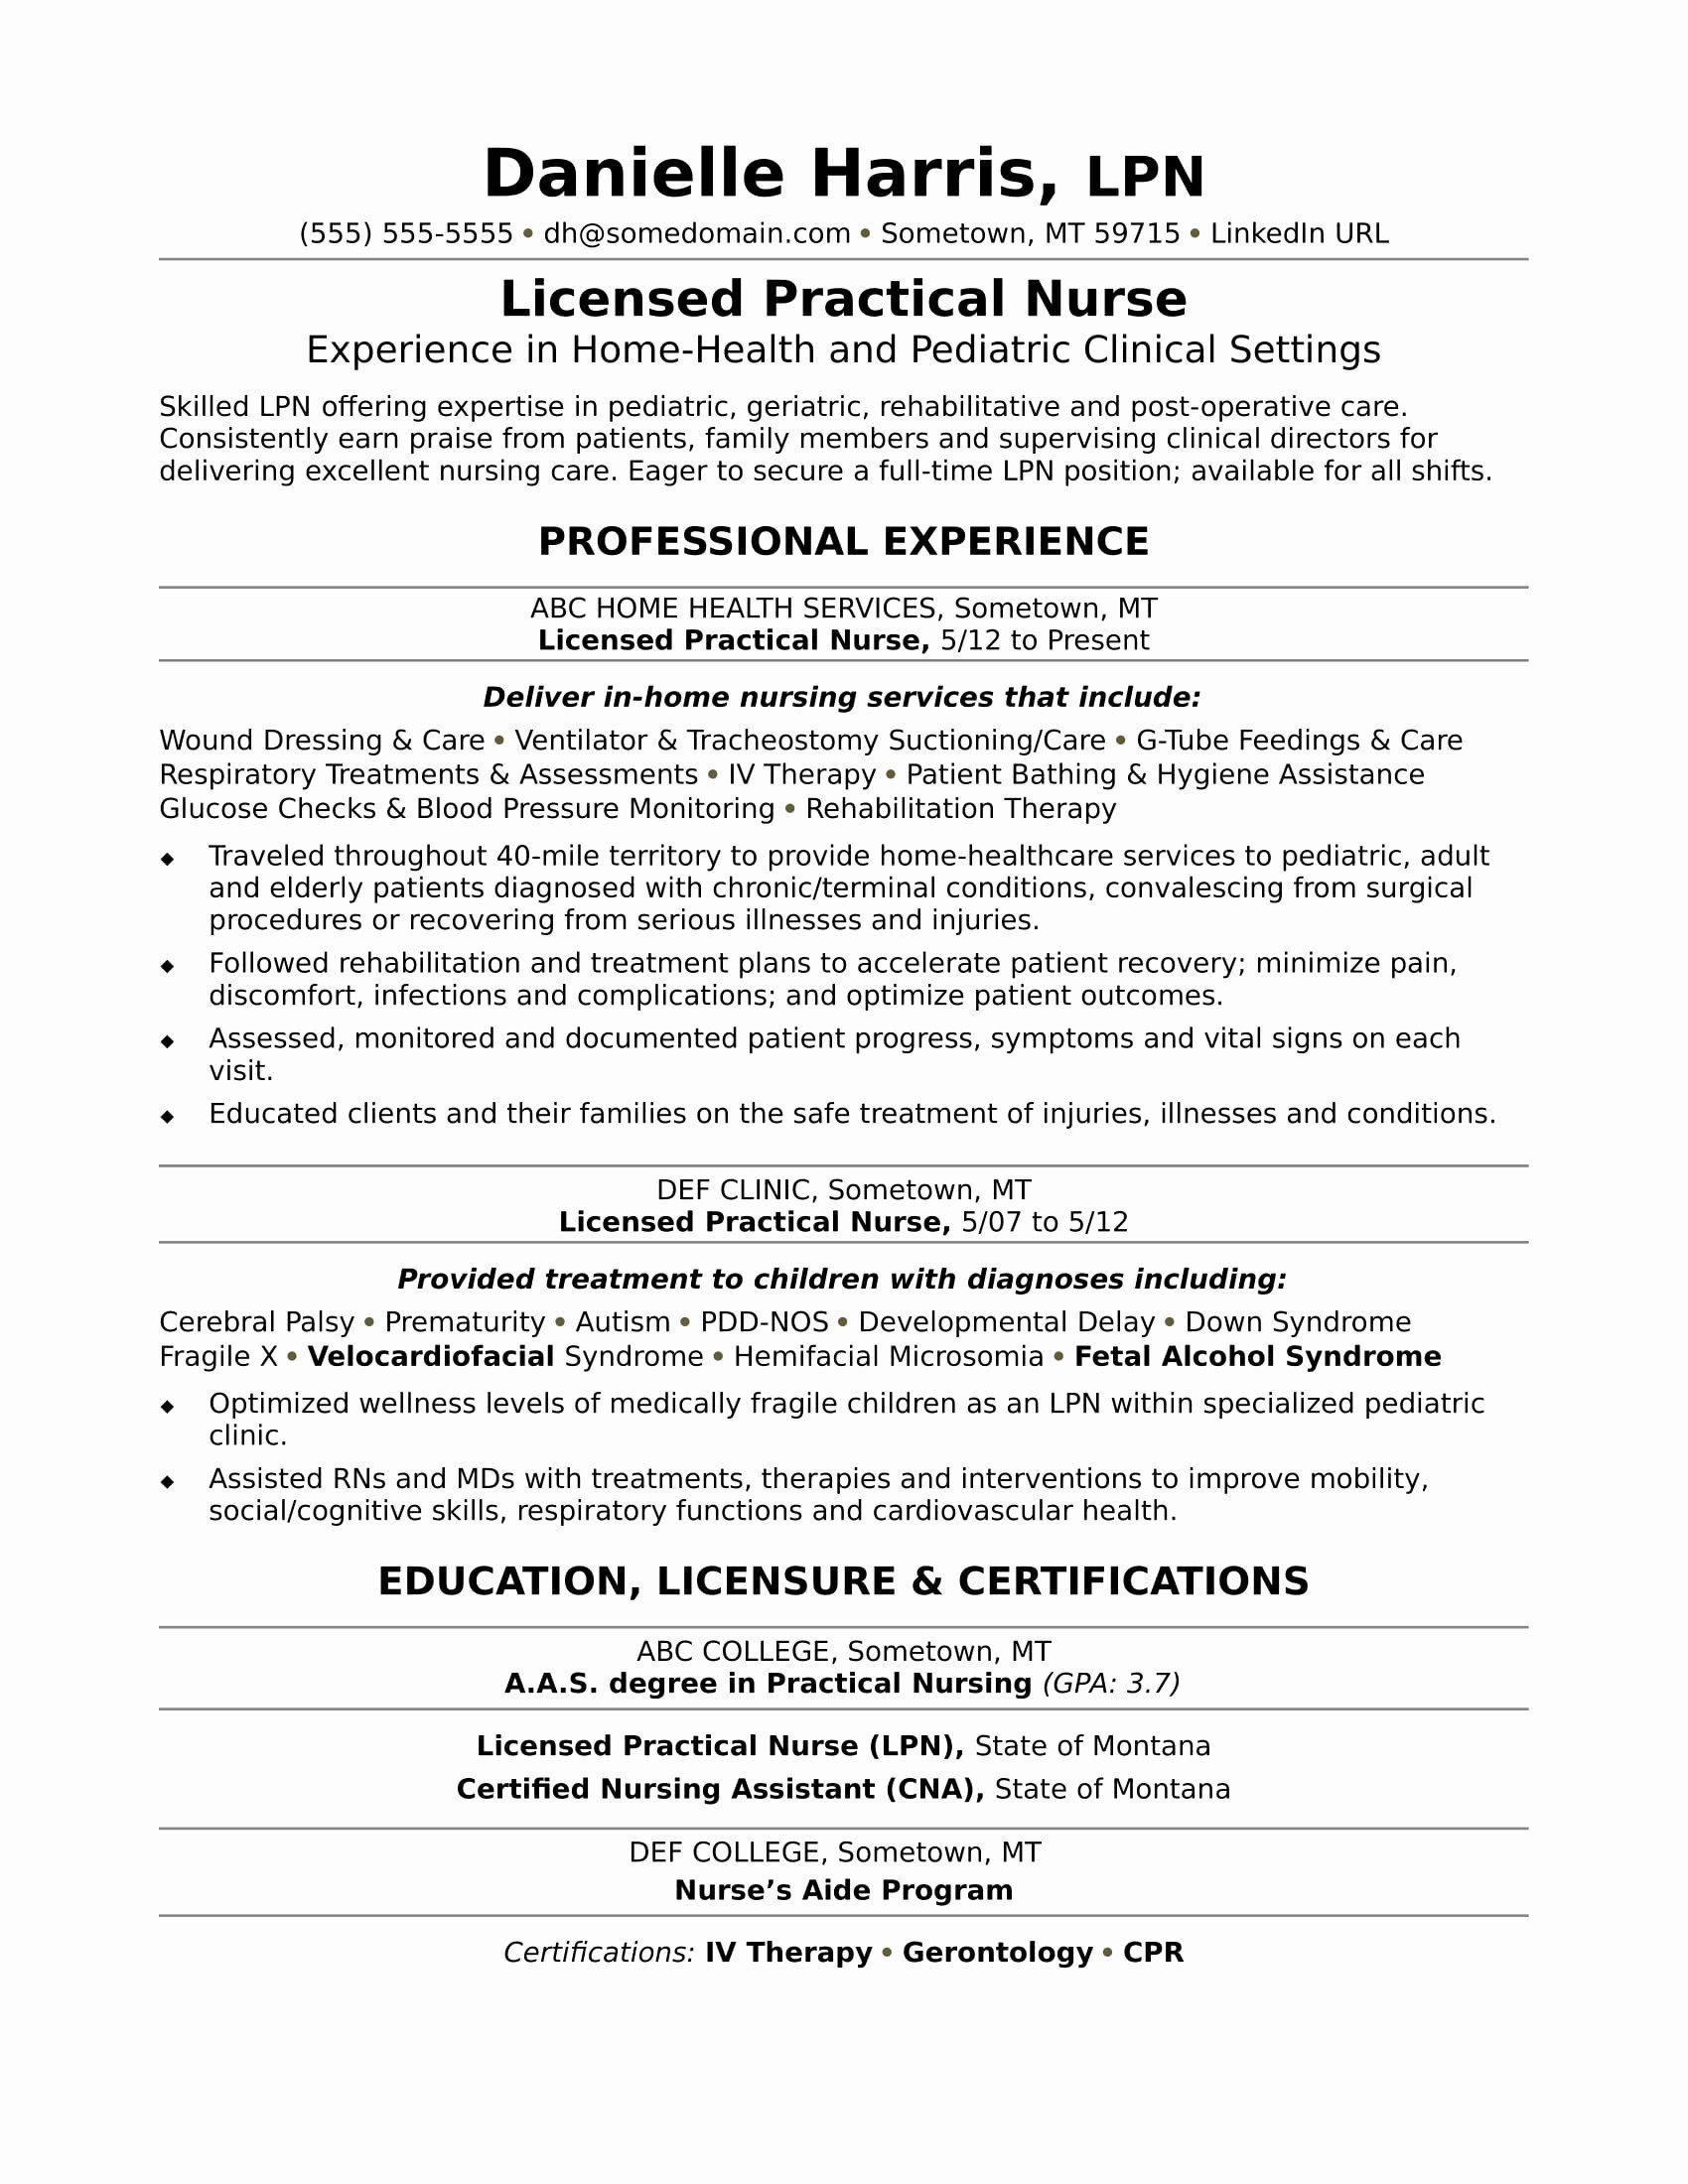 home health nurse resume Collection-Elegant New Nurse Resume Awesome Nurse Resume 0d Wallpapers 42 19-m